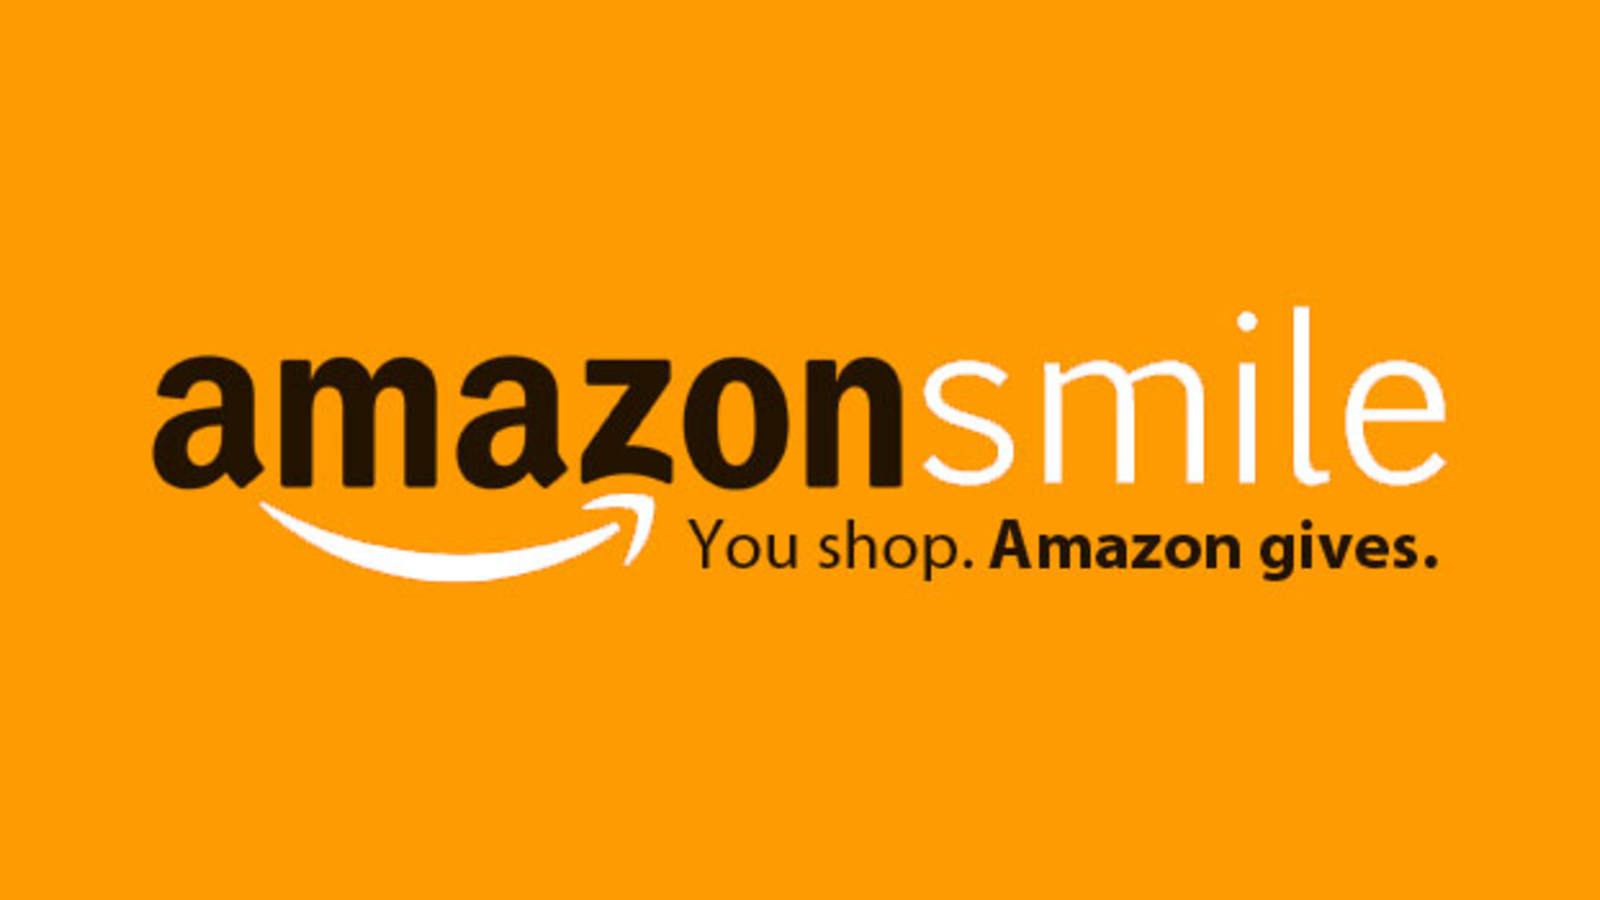 Amazon SMILE - Did you know you can add B&H as your charity of choice when you make any (and all) Amazon purchases?